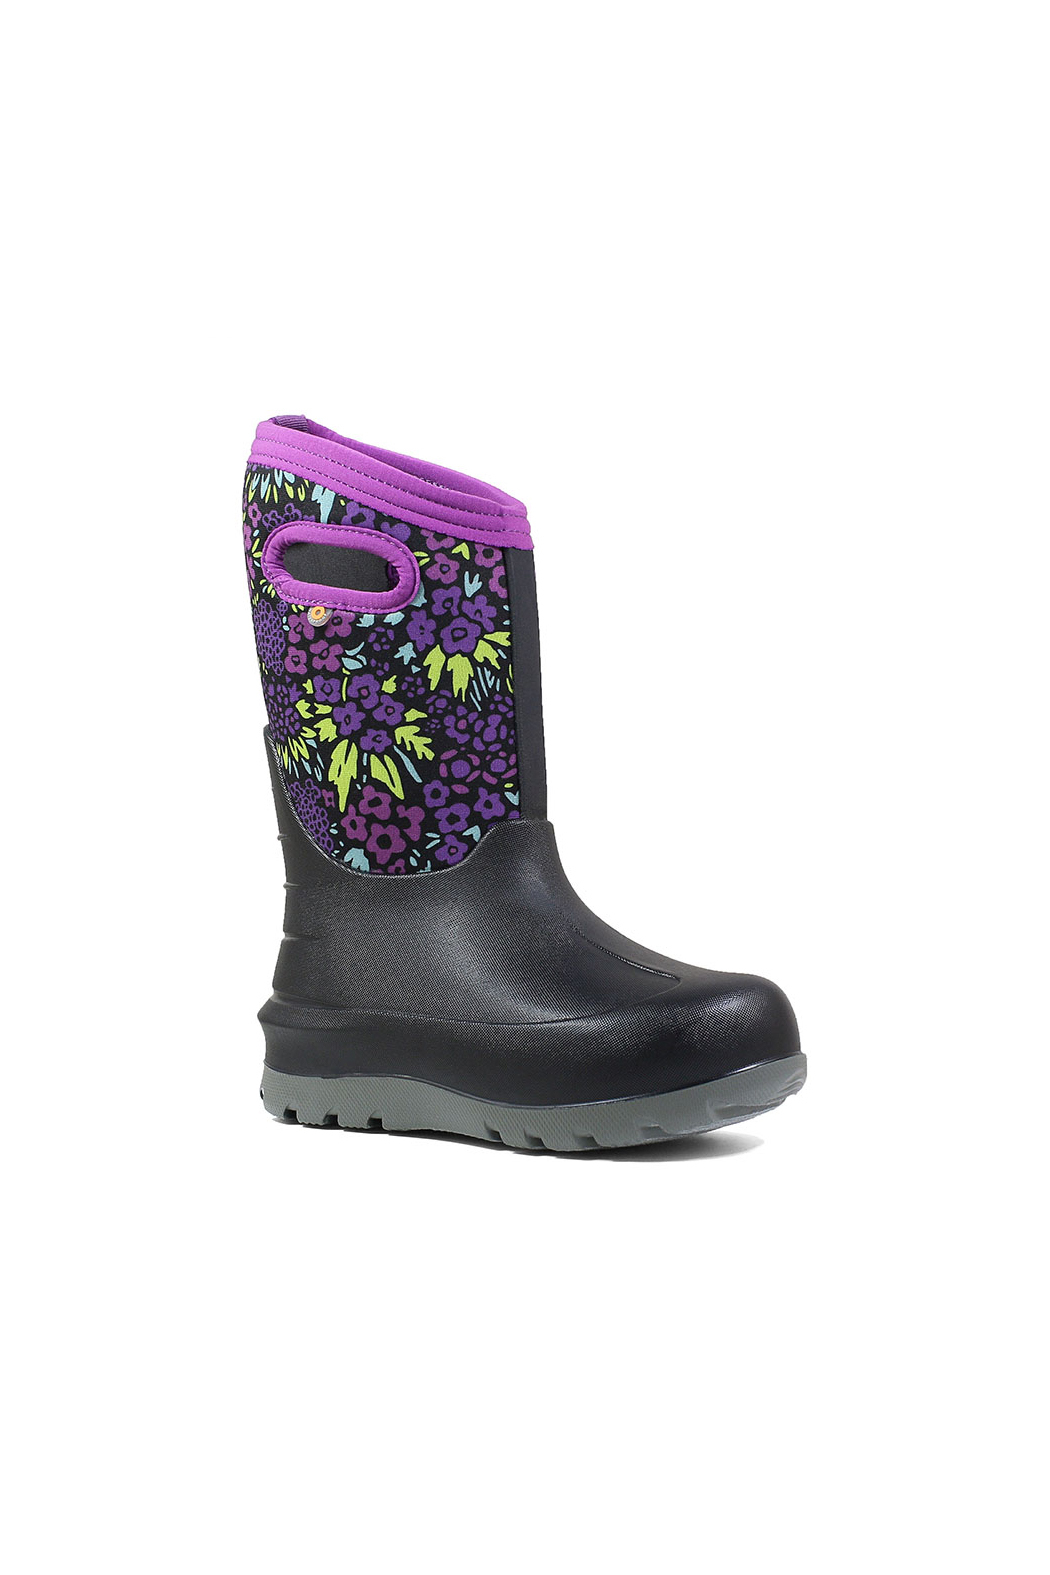 BOGS Neo-Classic NW Kids Waterproof Insulated Boots - Front Full Image